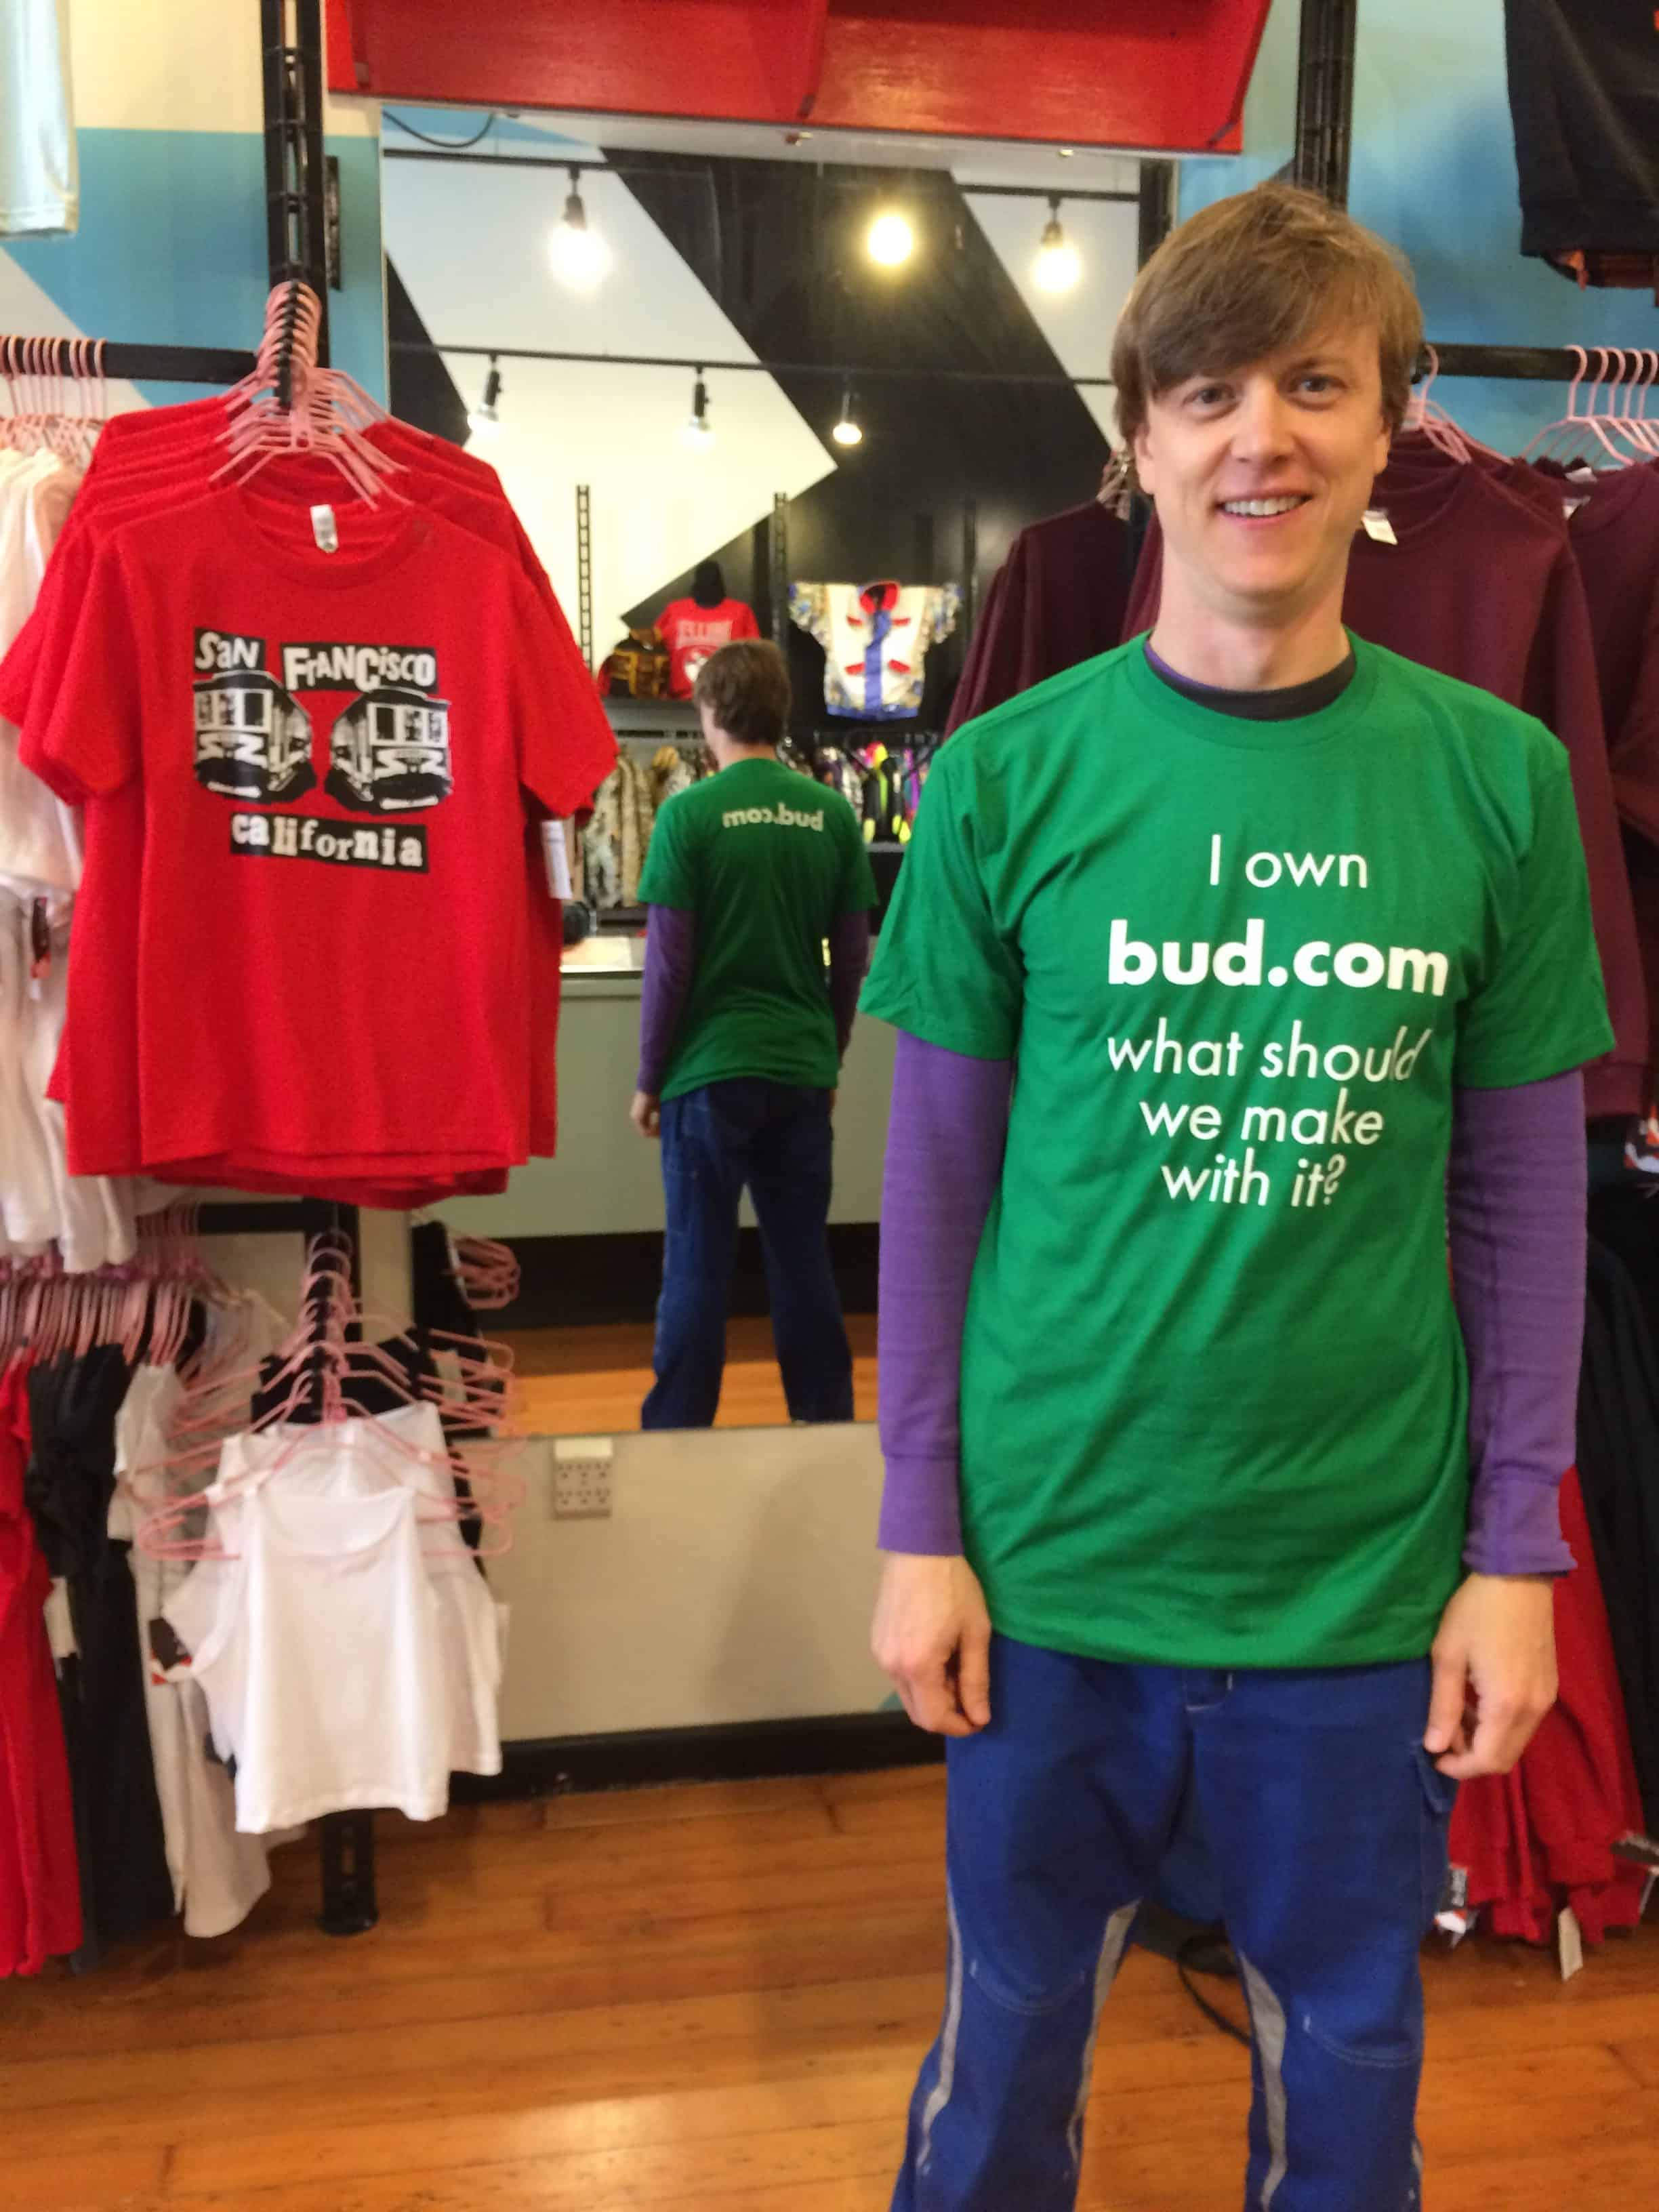 """I own bud.com - what should we make with it?"" t-shirt from 4/20 in 2015"